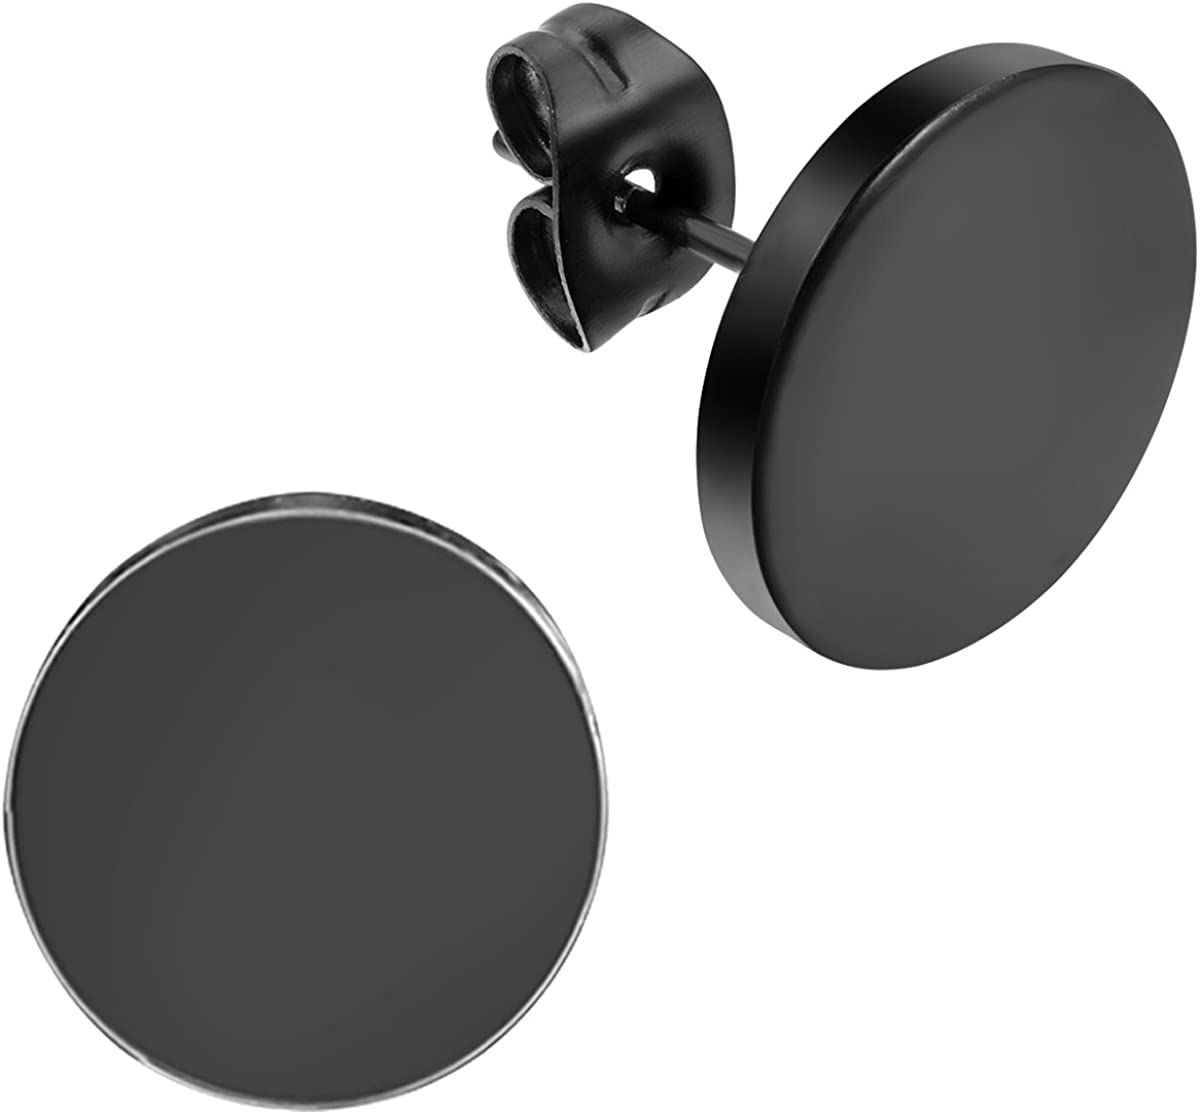 Flongo Men's Women's 12mm Round Stainless Steel Black Tunnel illusion Tapers Cheater Faux Fake Stud Earrings